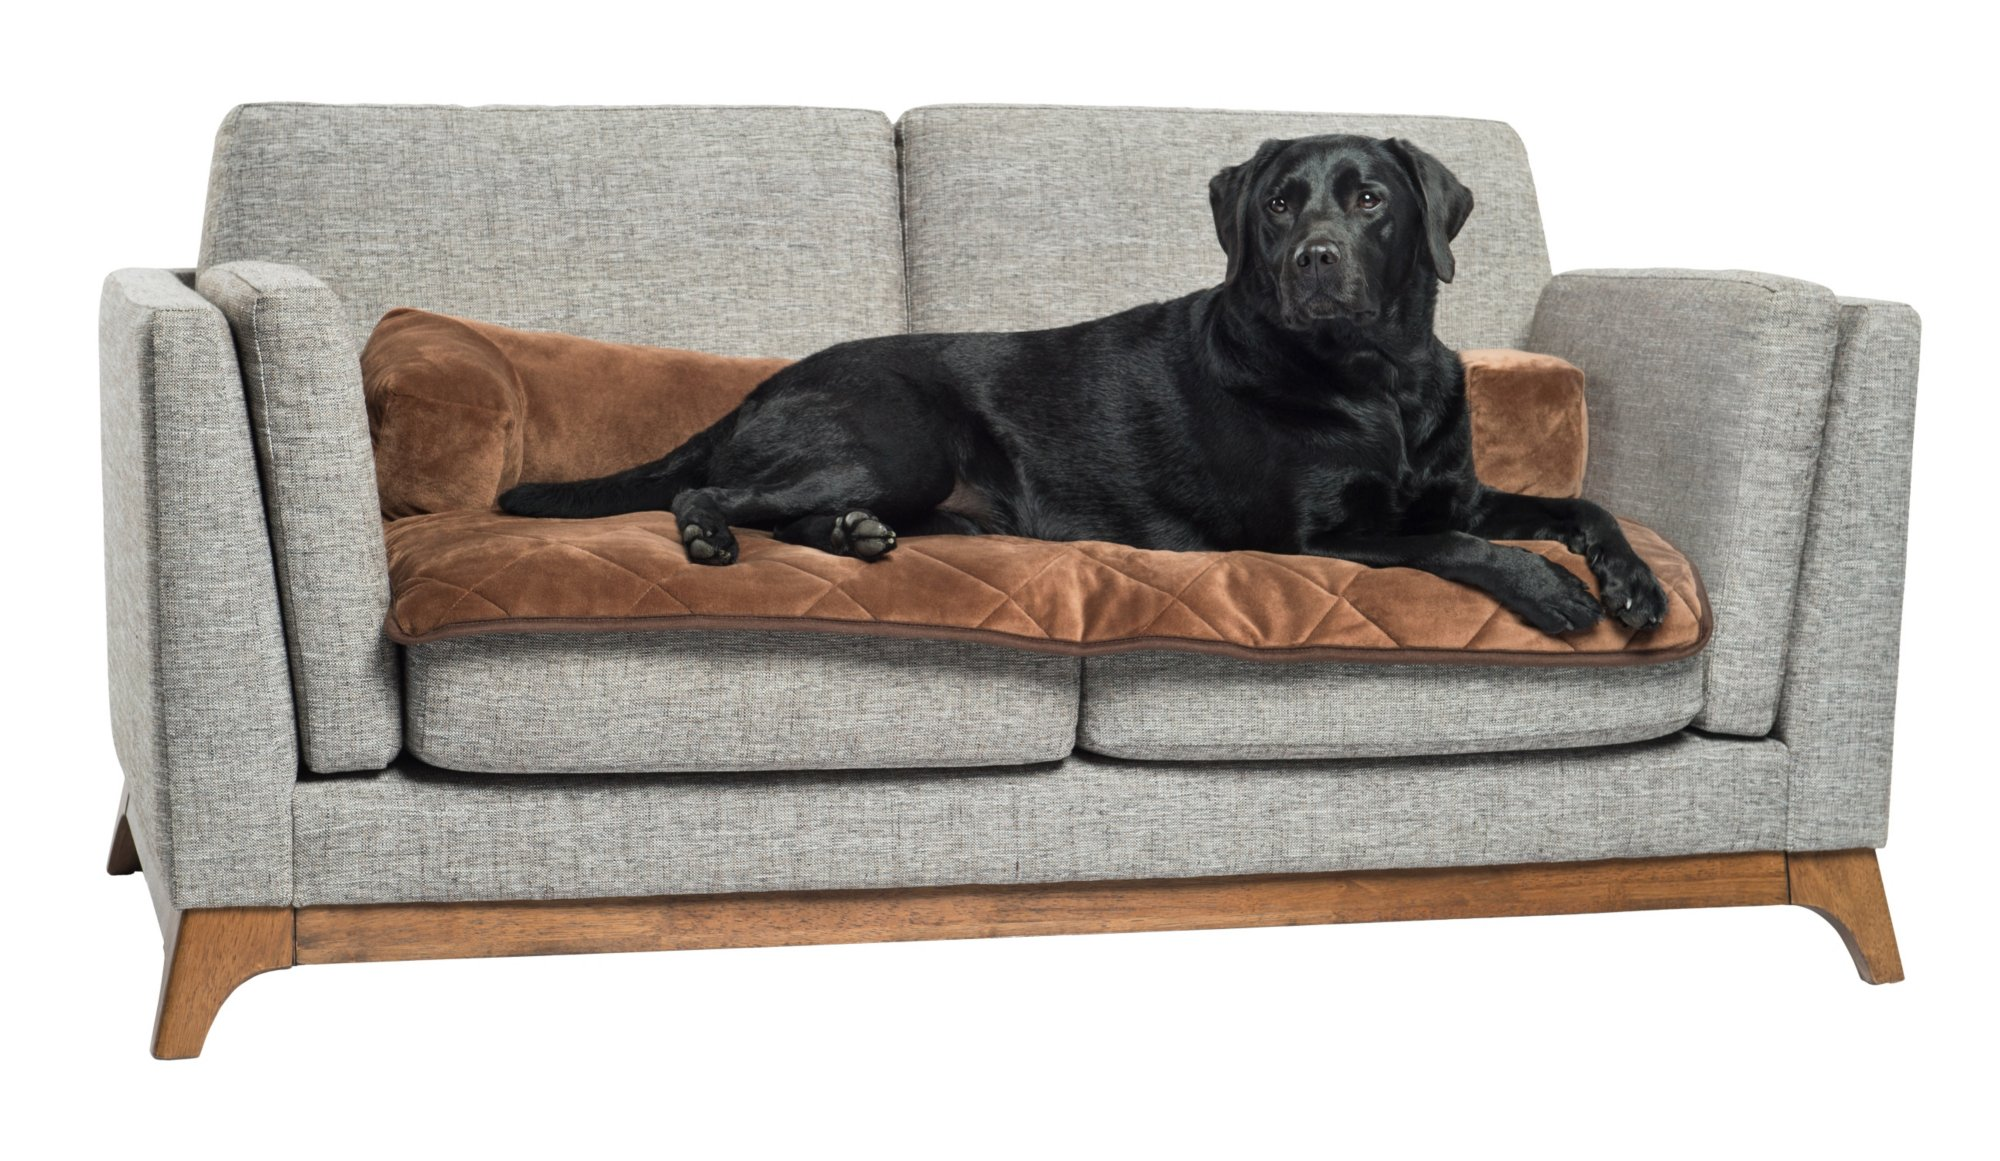 Pet Therapeutics TheraWarm Self Warming Sofa Bolster and Furniture